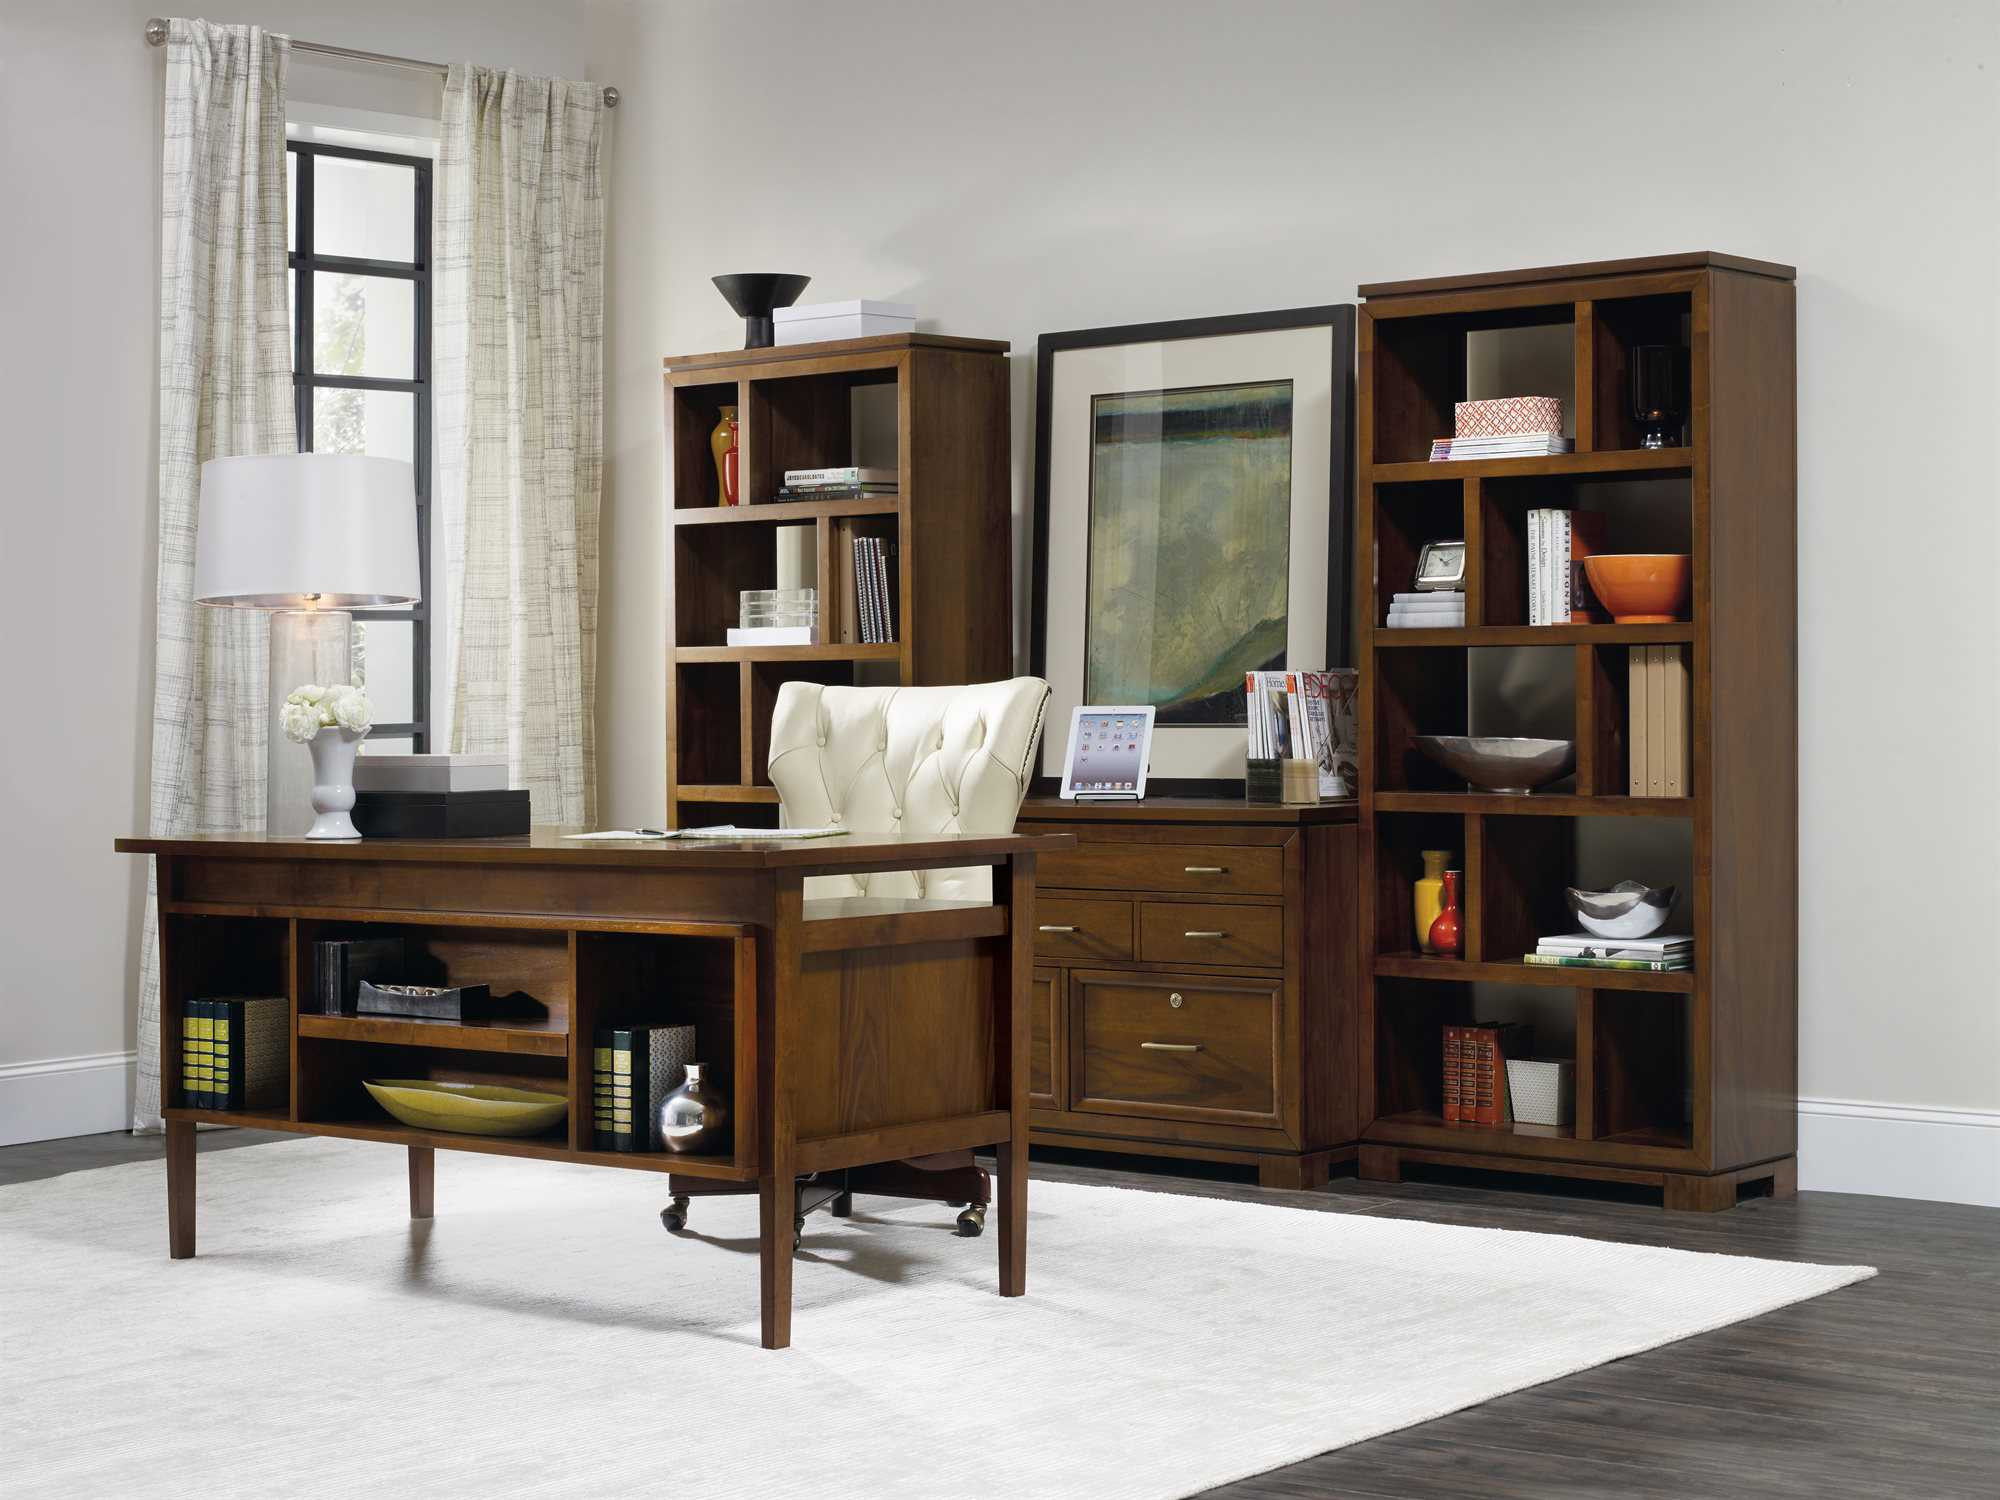 Best ideas about Hooker Office Furniture . Save or Pin Hooker Furniture Viewpoint Home fice Set Now.